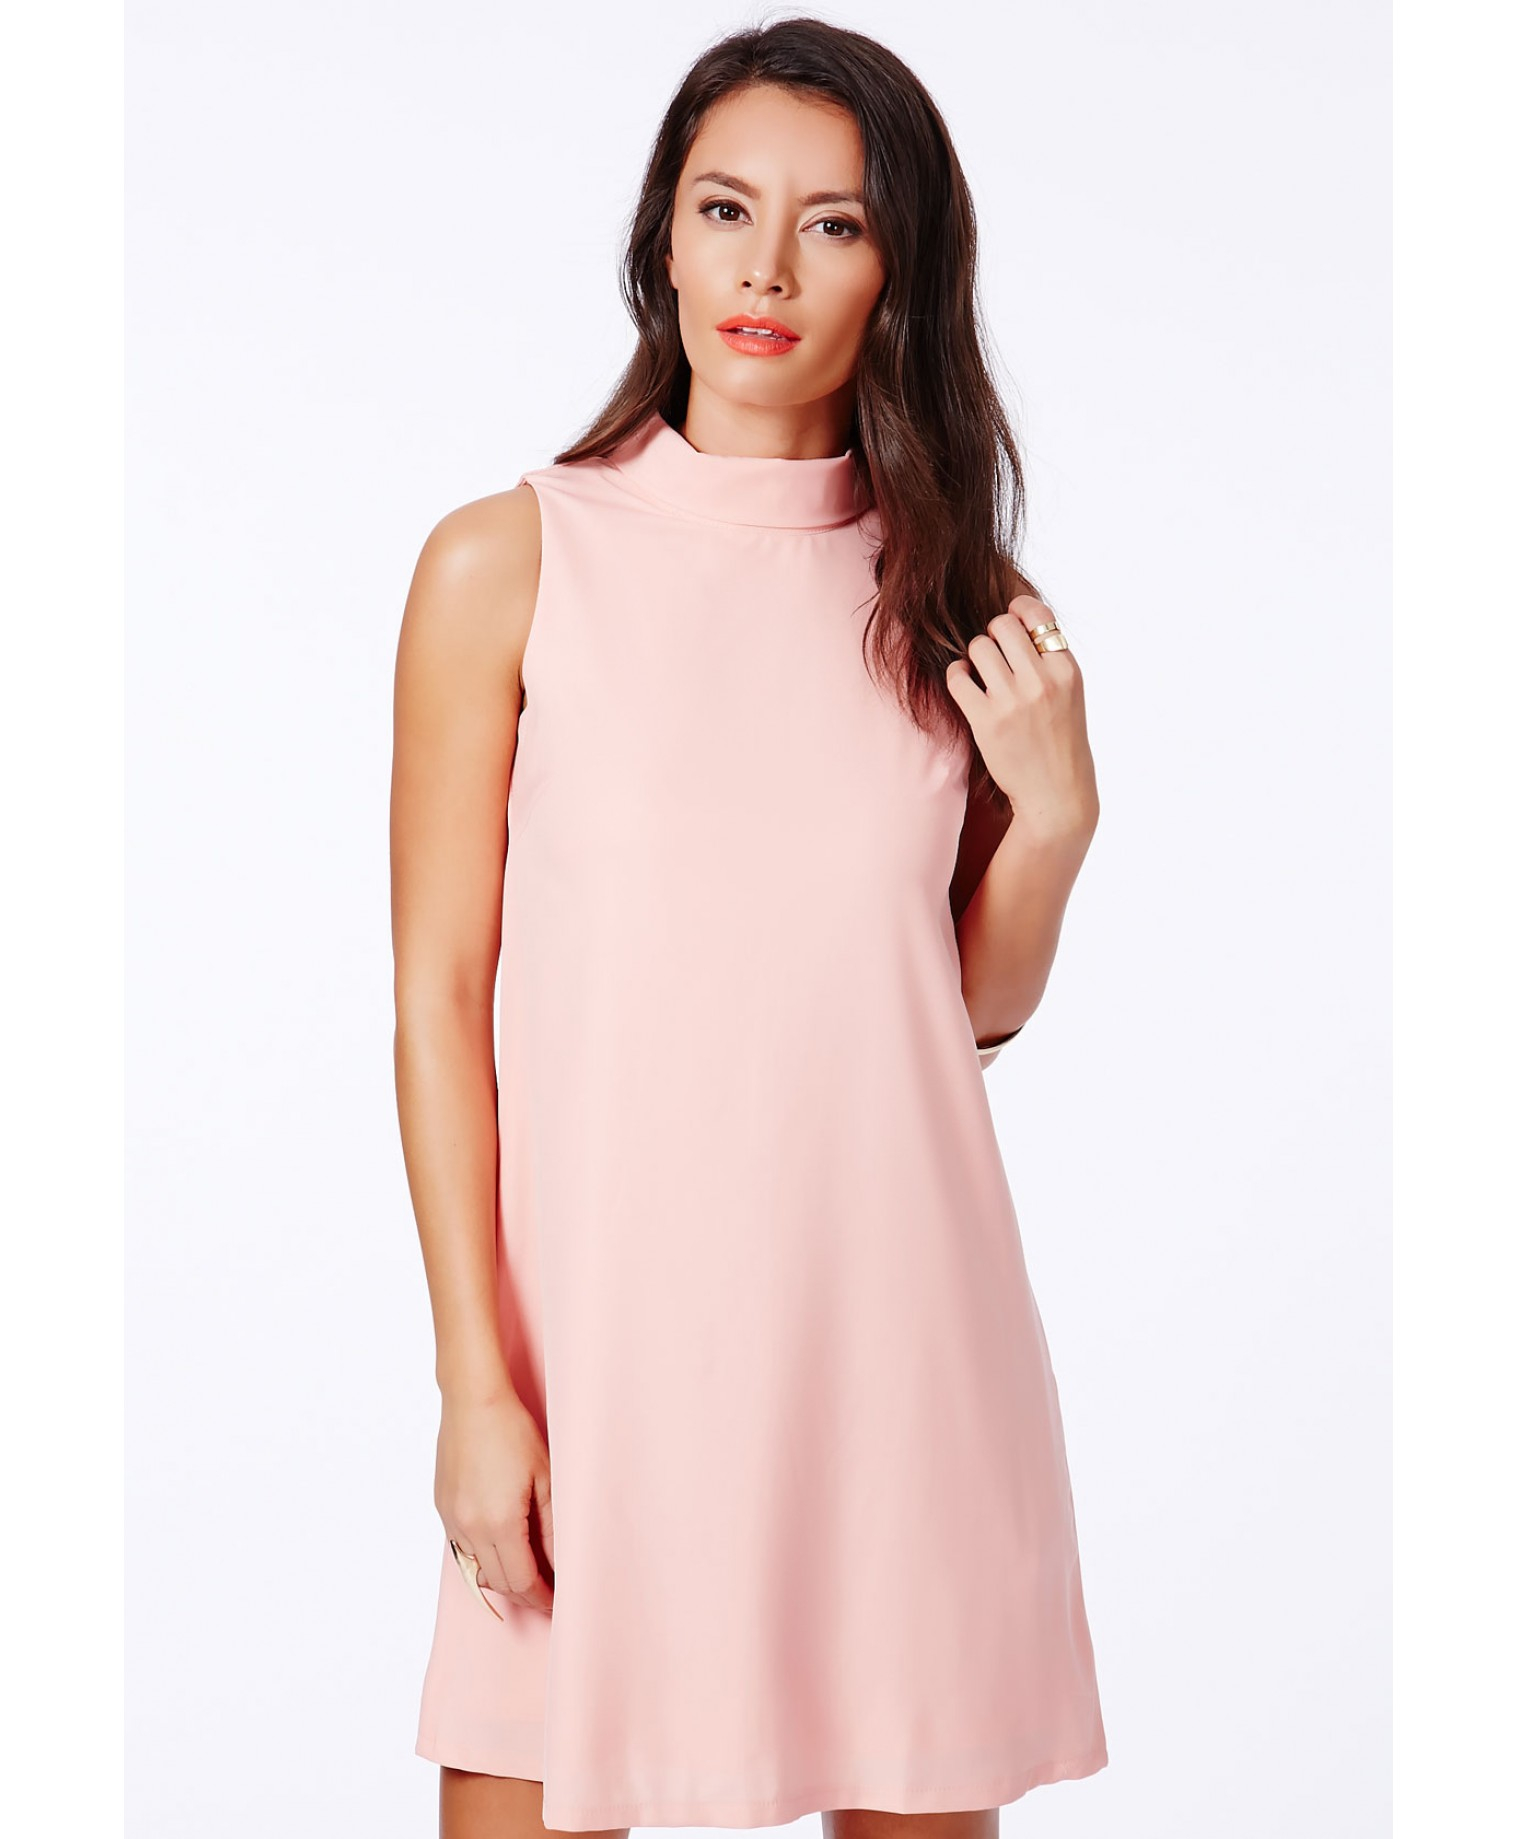 Missguided Jemna Pink Shift Dress With Roll Neck in Pink | Lyst